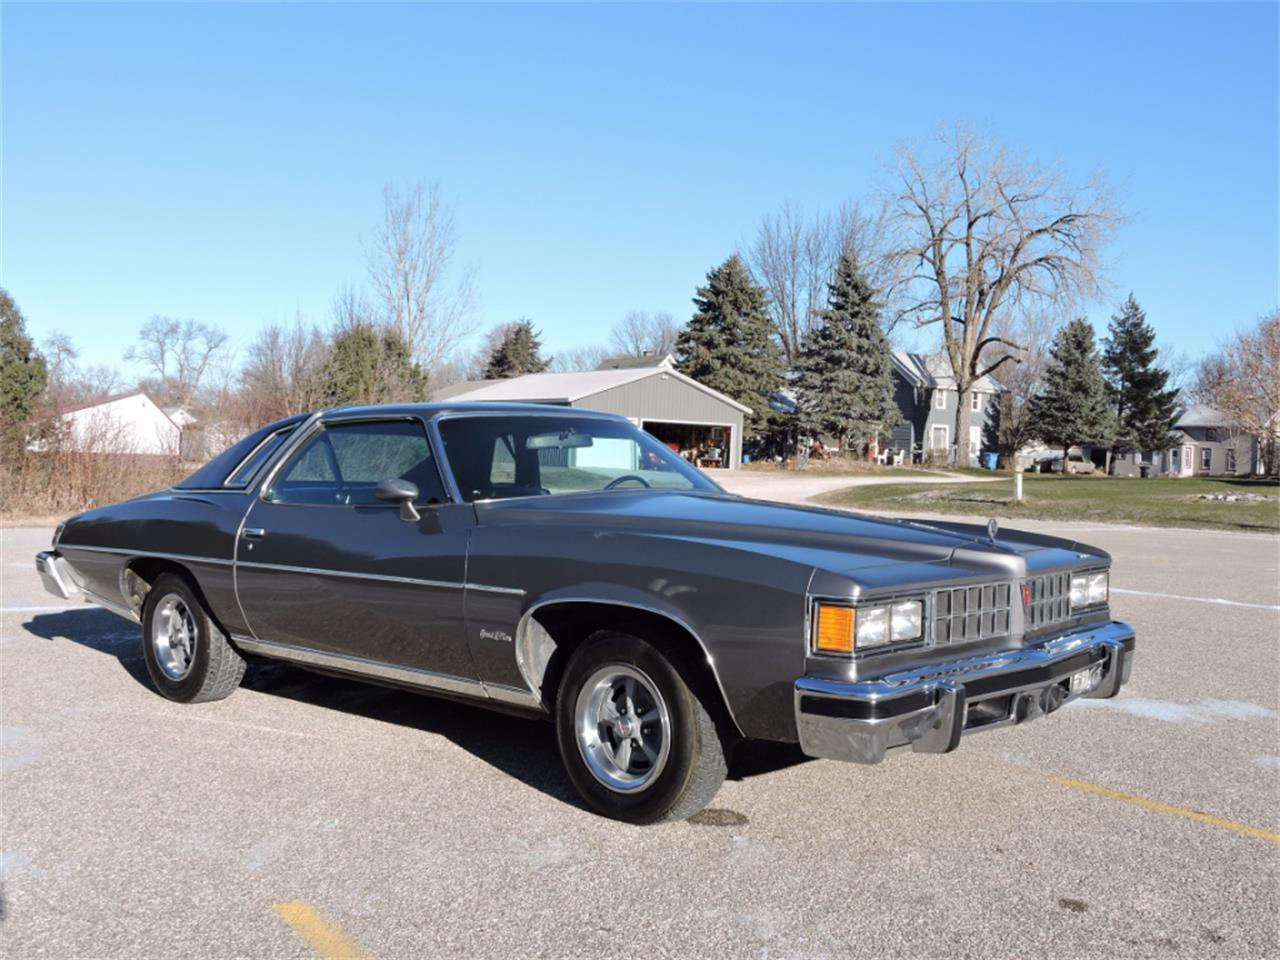 1977 Pontiac Grand LeMans for sale in Greene, IA – photo 10